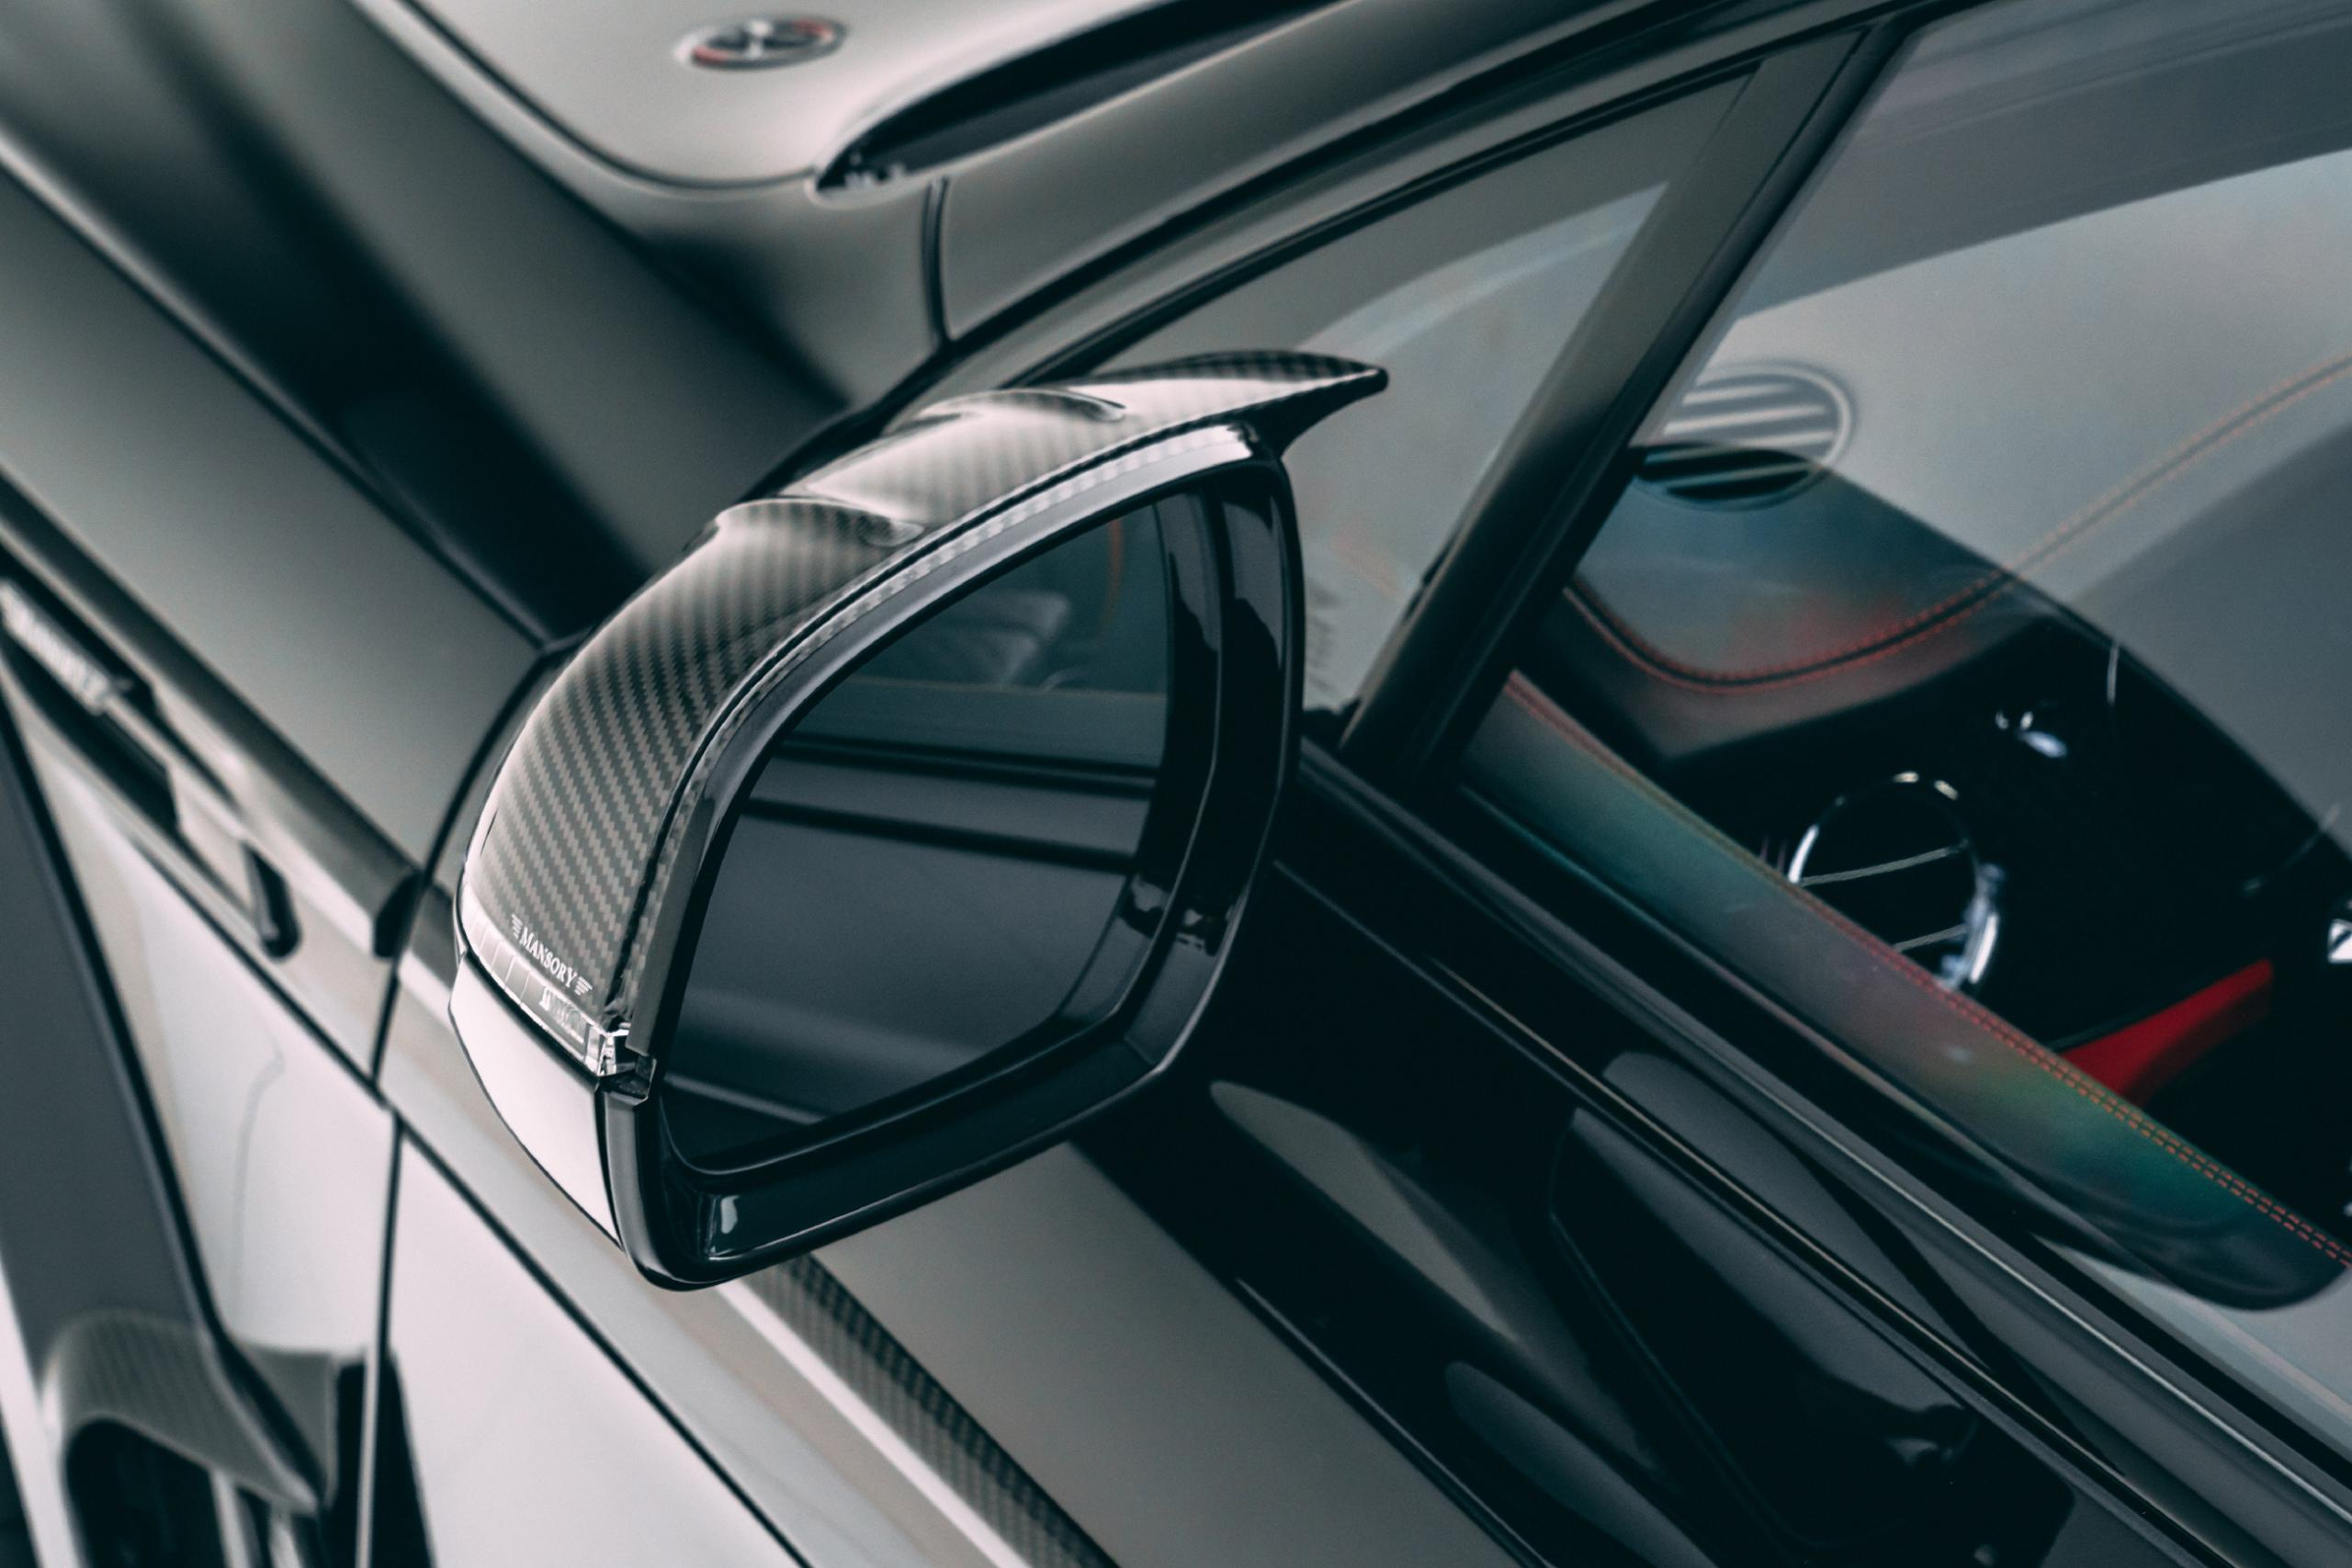 mansory new bentayga wide body kit carbon fiber mirror cover rear 2021